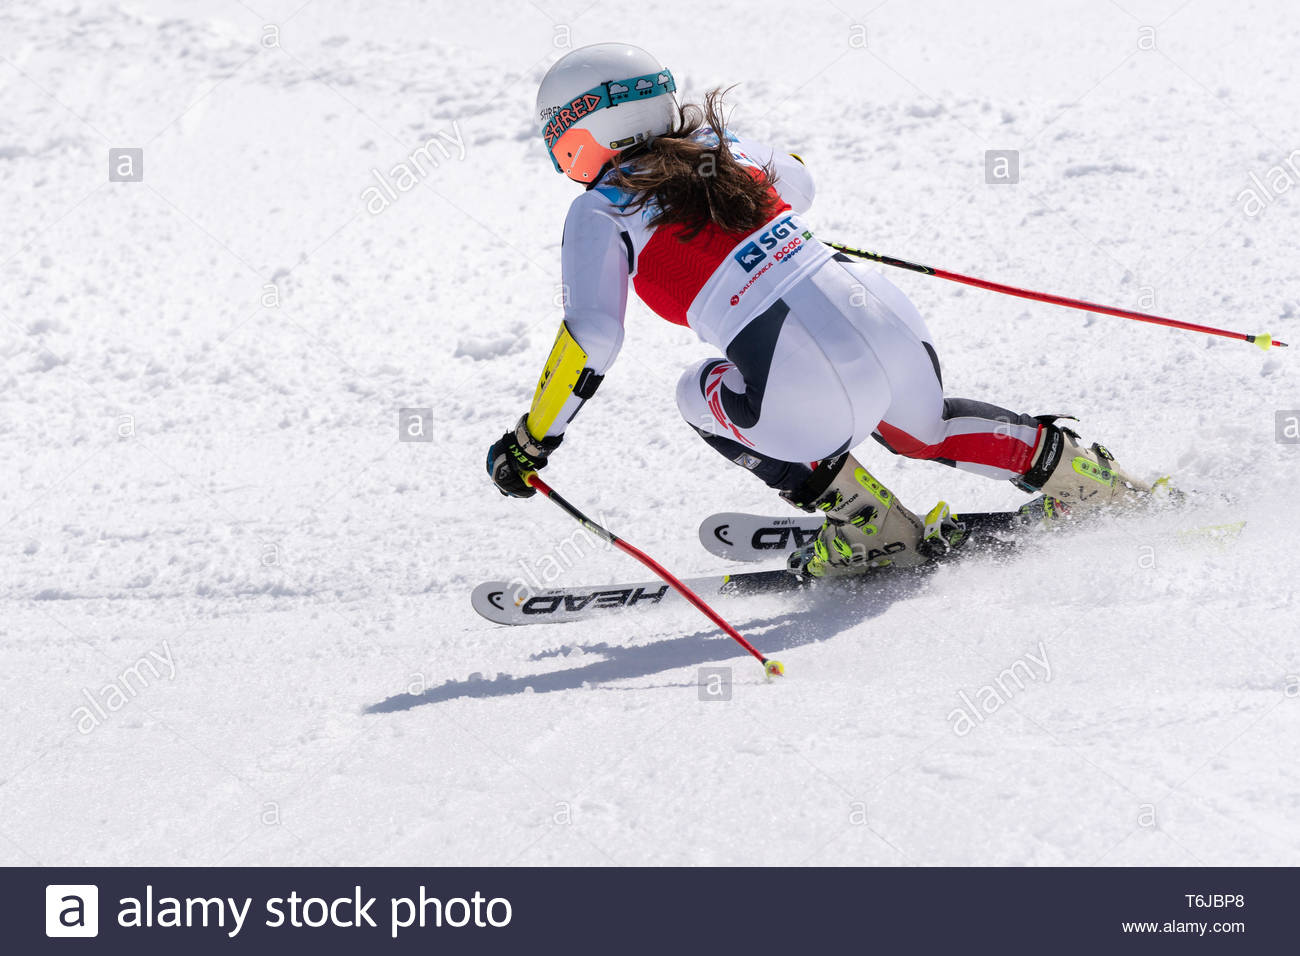 KAMCHATKA PENINSULA, RUSSIAN FEDERATION - APR 1, 2019: Russian Women's Alpine Skiing Championship, giant slalom. Mountain skier Popova Ekaterina (Kamc - Stock Image